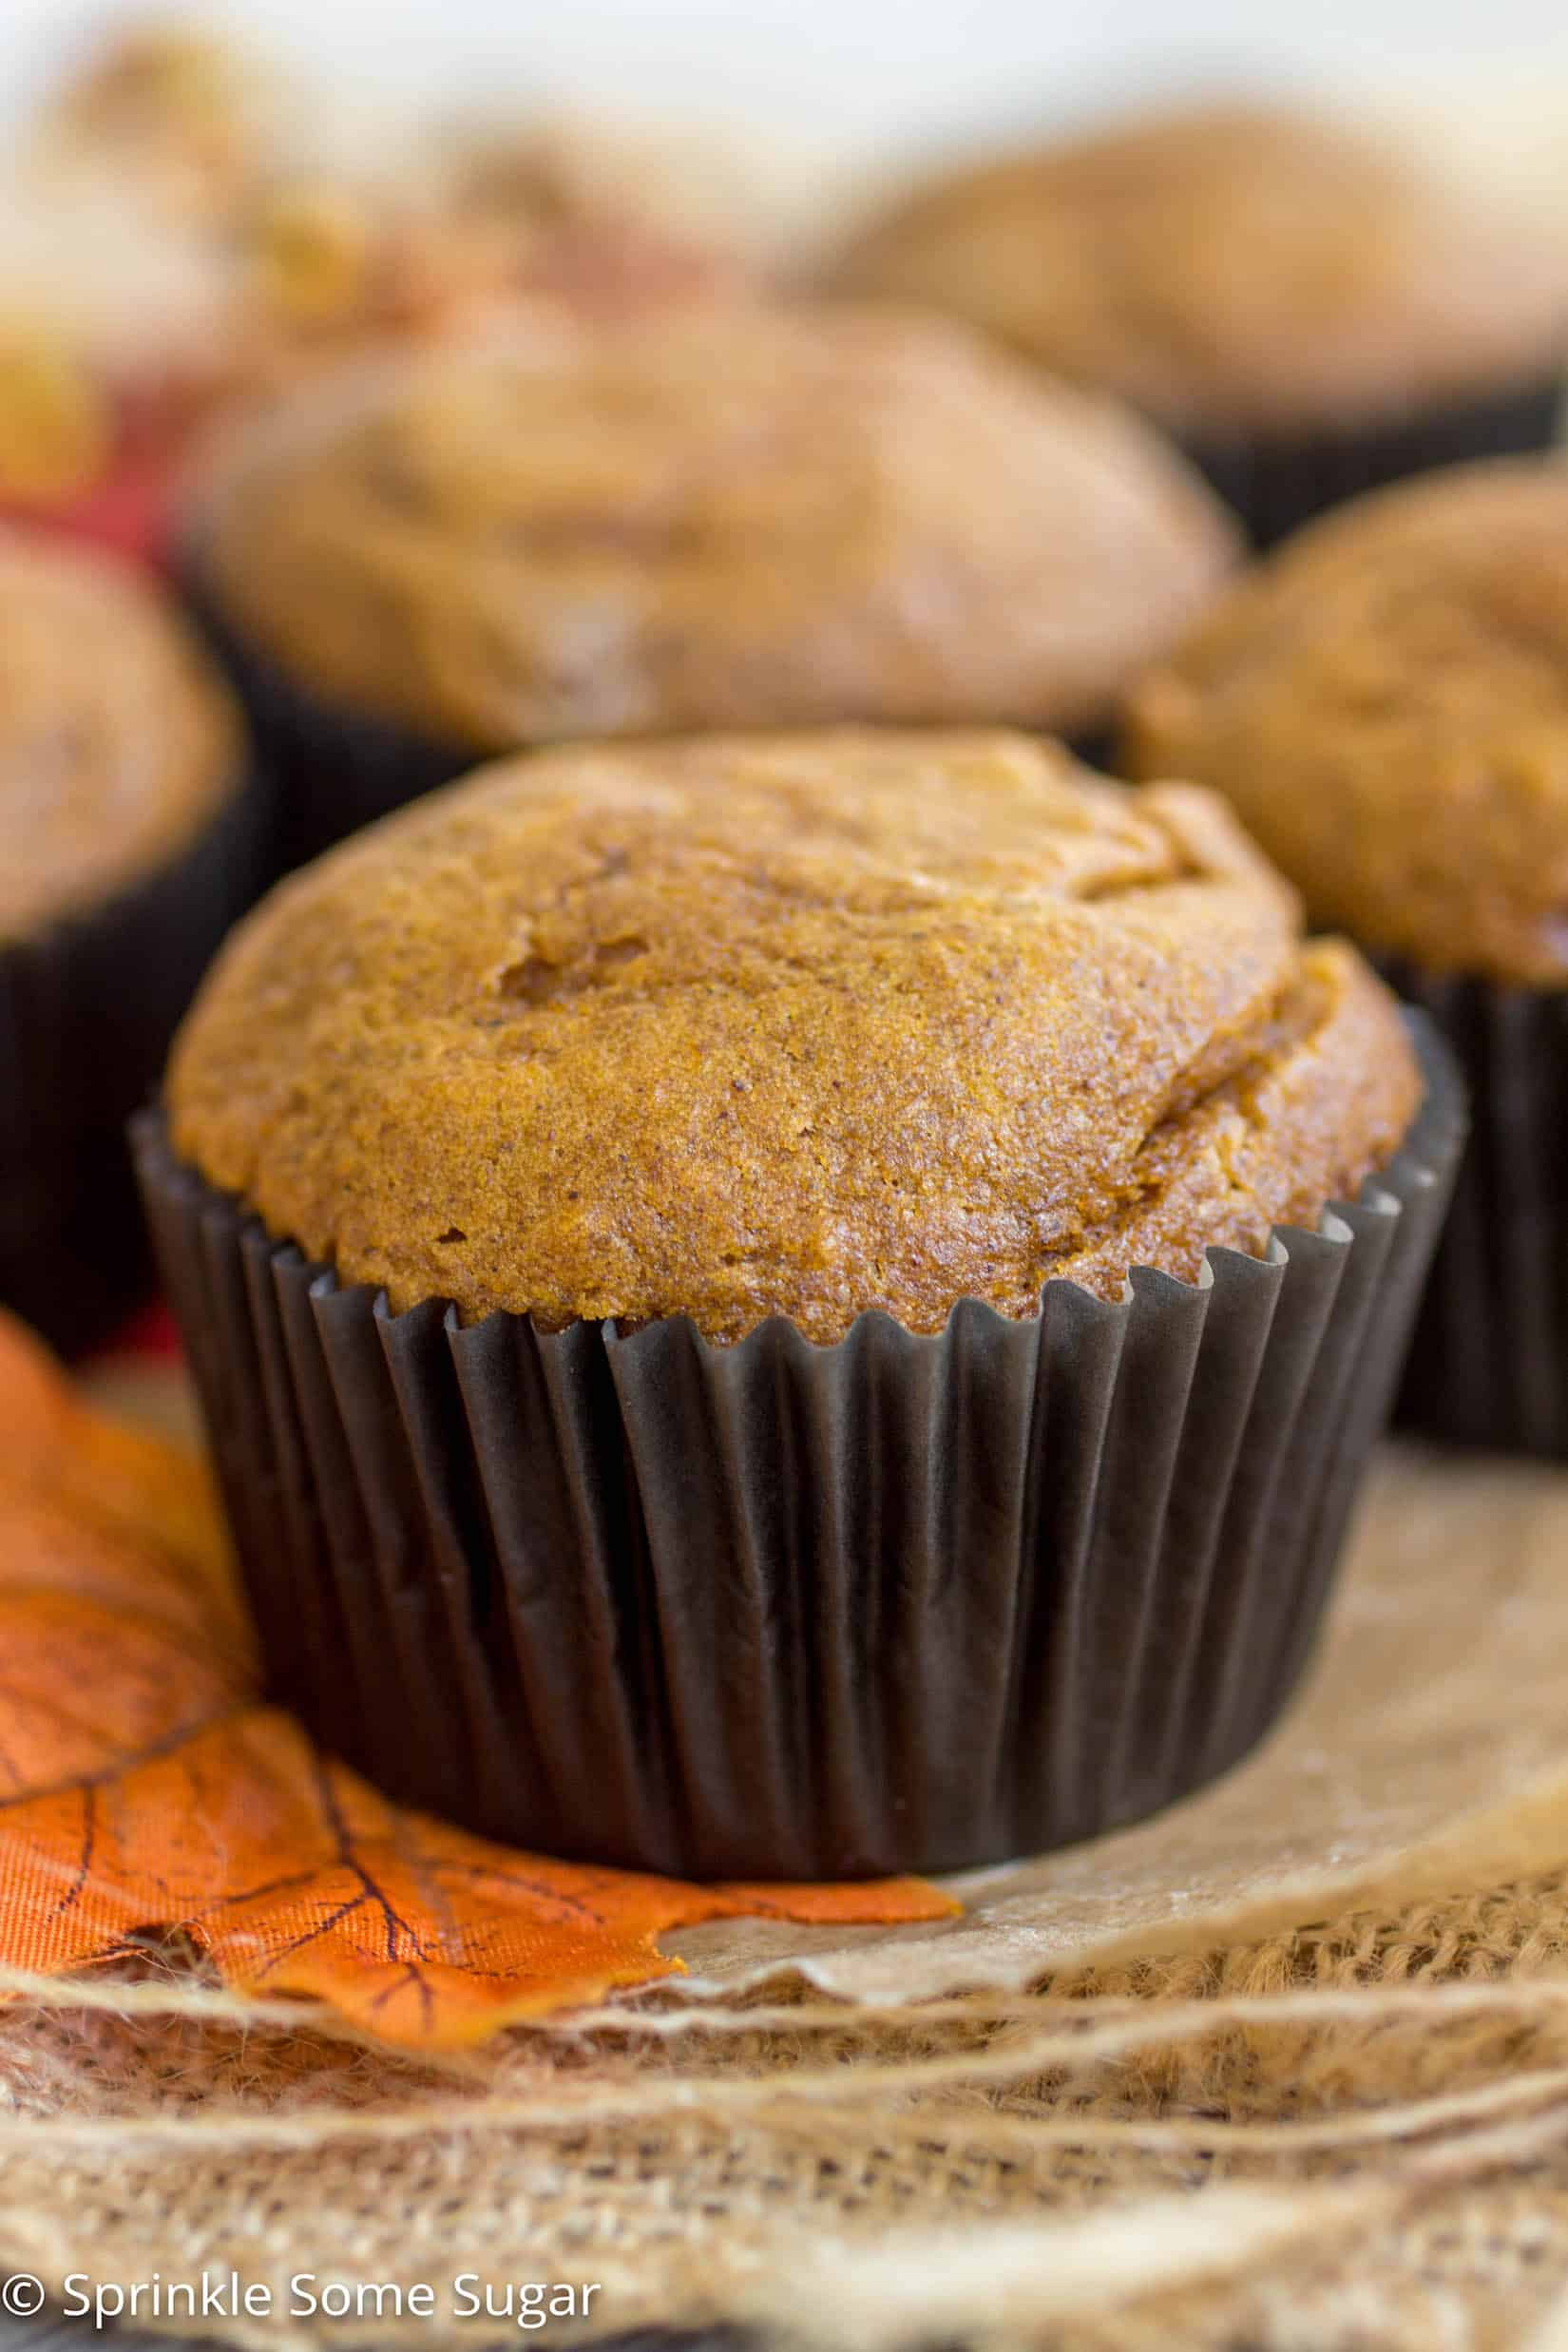 Cheesecake-Filled Pumpkin Spice Muffins - Deliciously spiced, moist and tender pumpkin muffins stuffed with a sweet cheesecake filling!